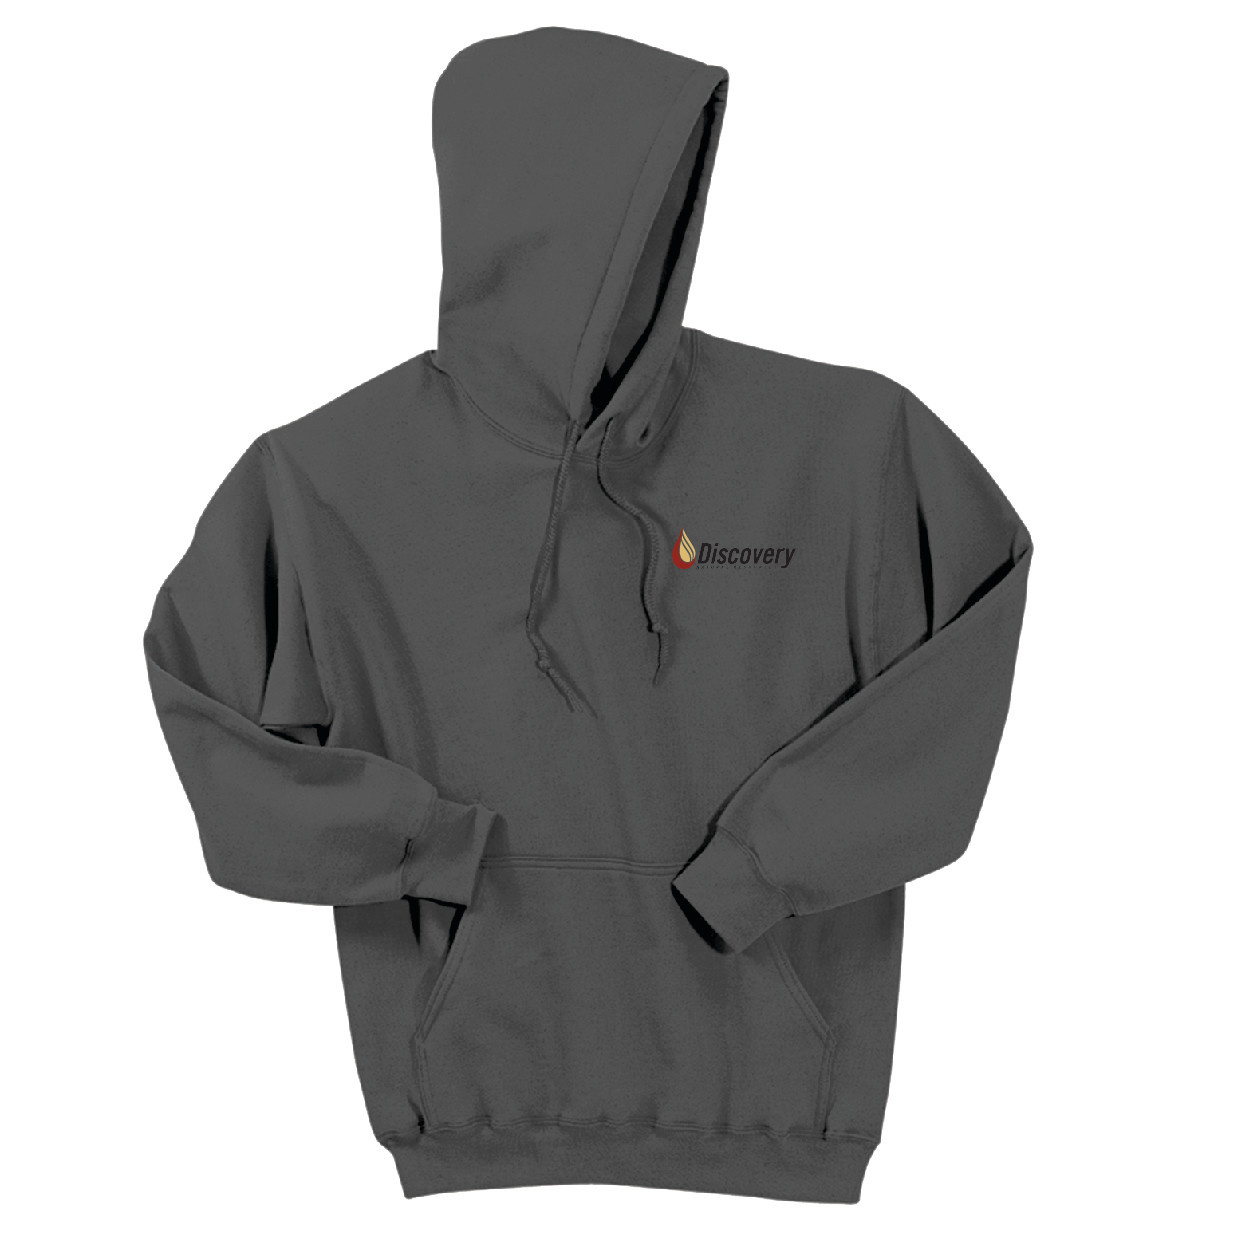 Gildan Gildan Dry Blend Pullover Hooded Sweatshirt (Charcoal)